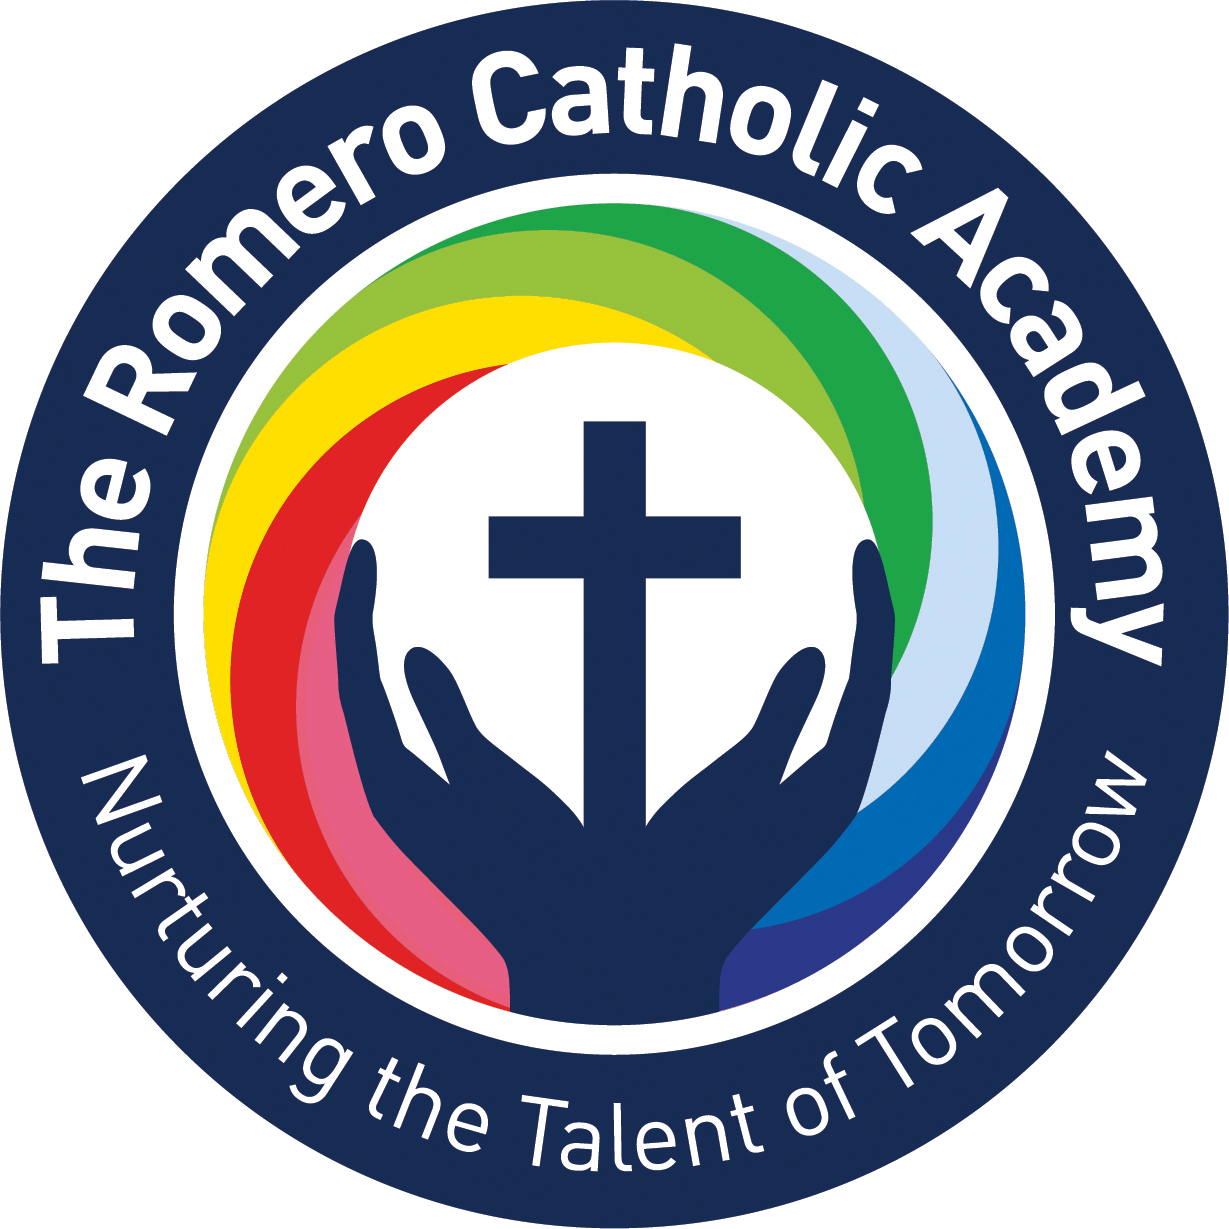 Romero Logo Roundel Upper And Lower Case Outline on archbishop oscar romero